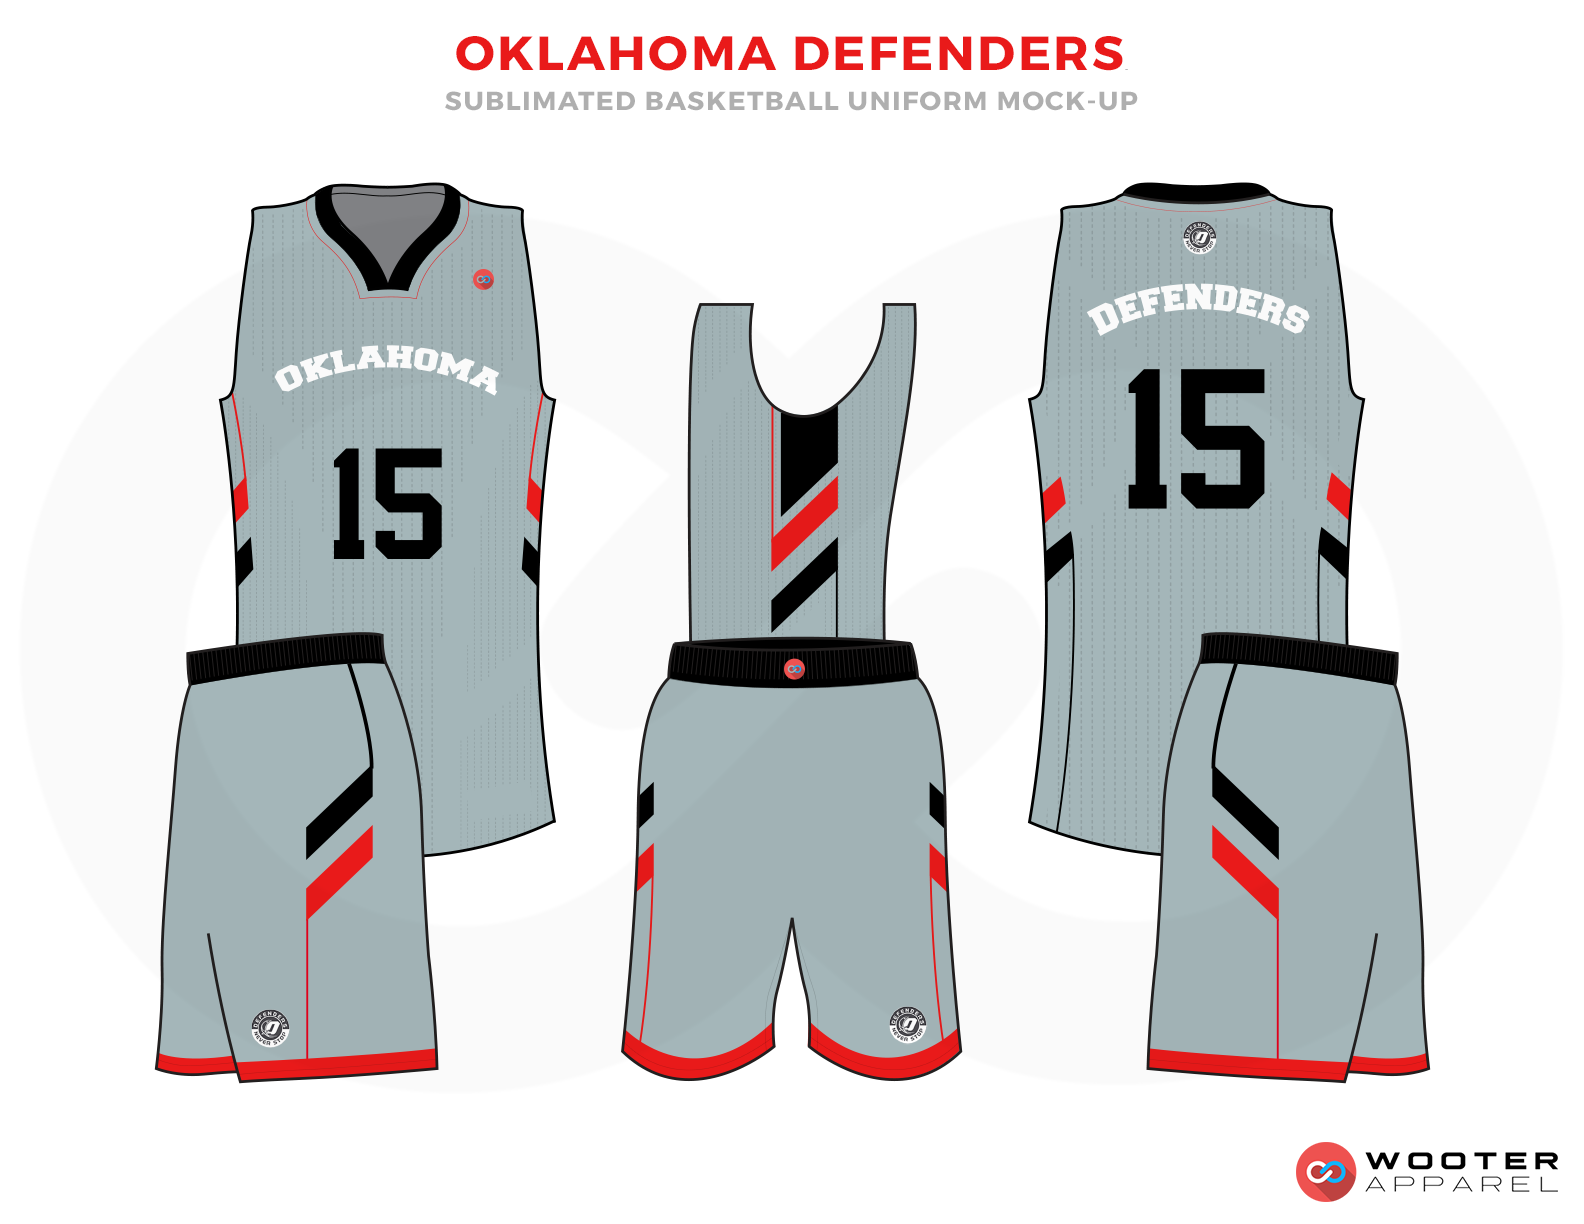 OKLAHOMA DEFENDERS Light Blue Red White and Black Basketball Uniforms, Jersey and Shorts